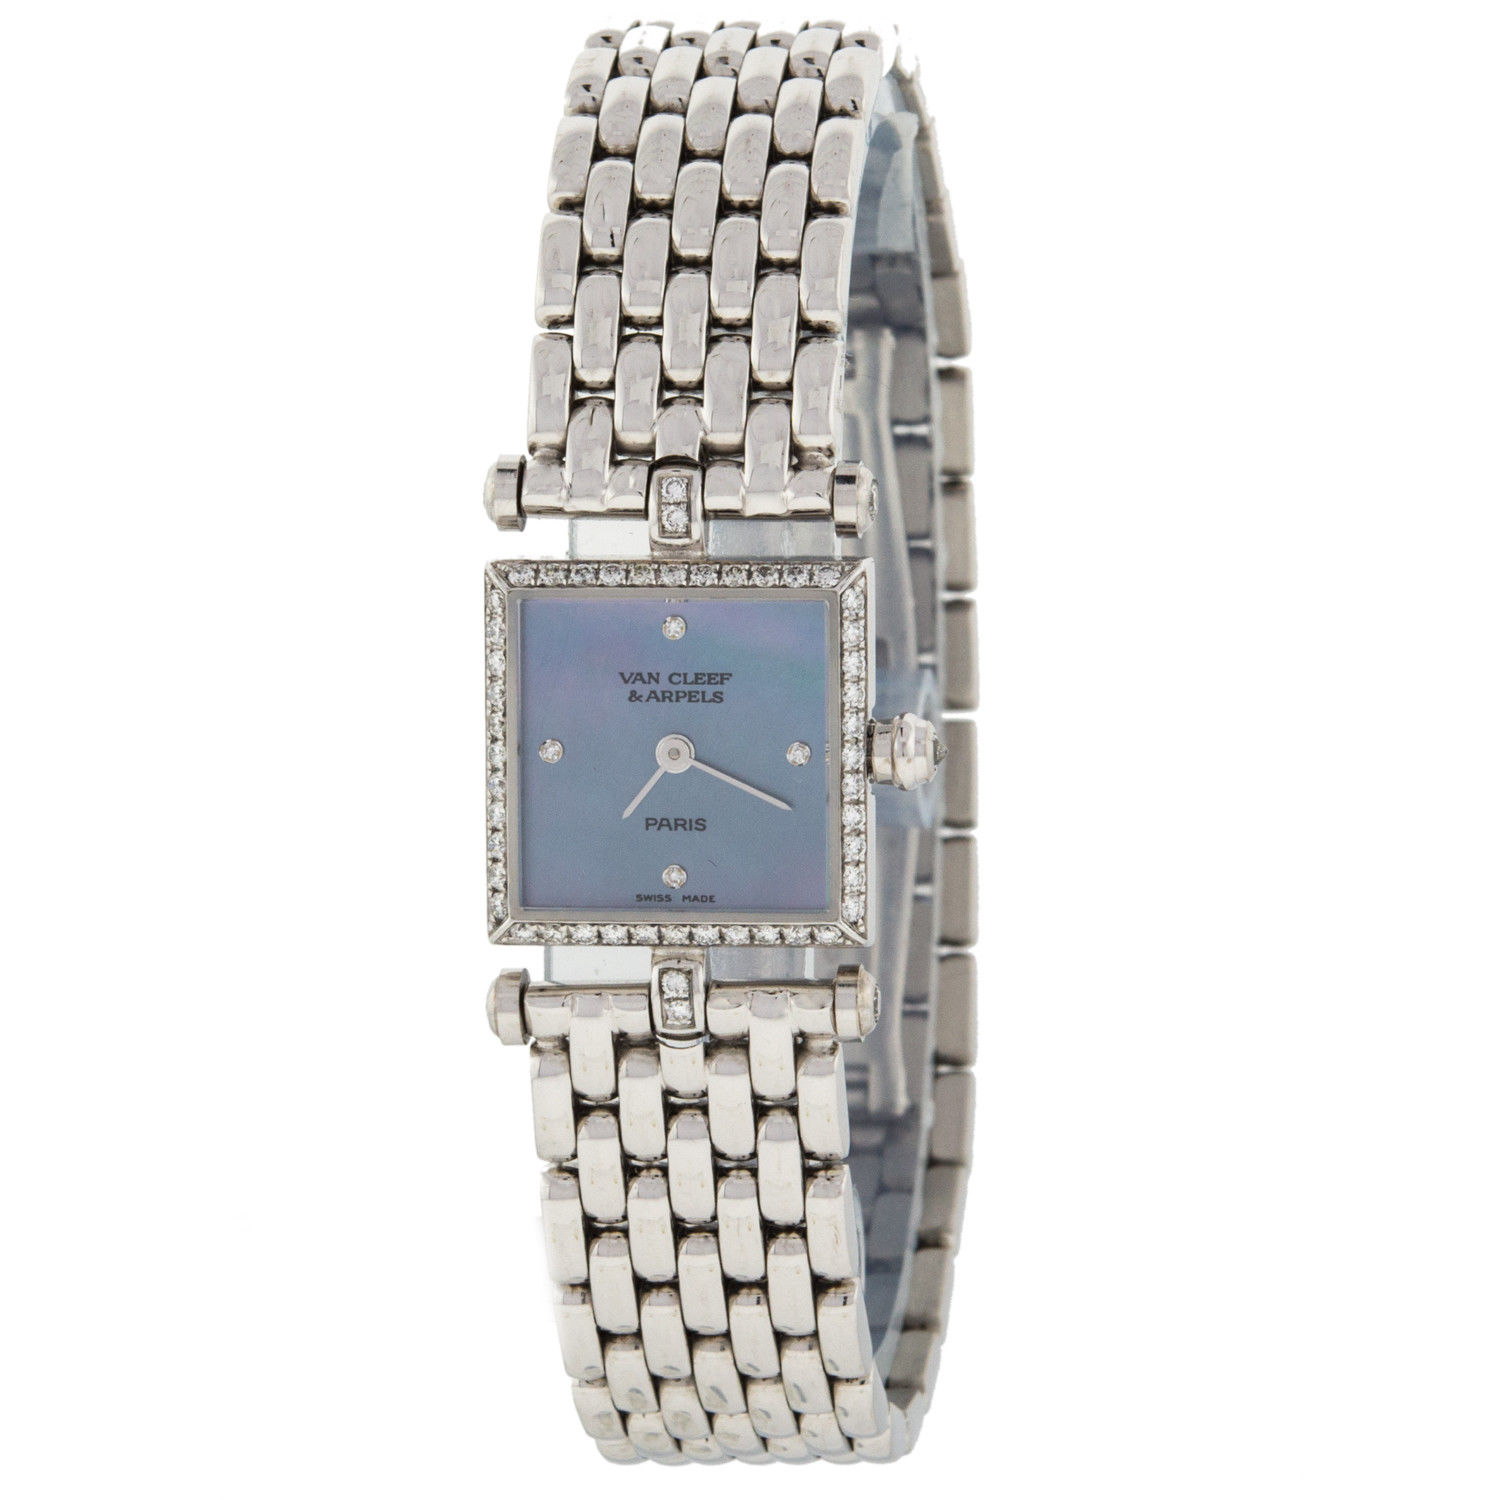 Van Cleef Arpels 322942  36mm in White Gold with Diamond Bezels